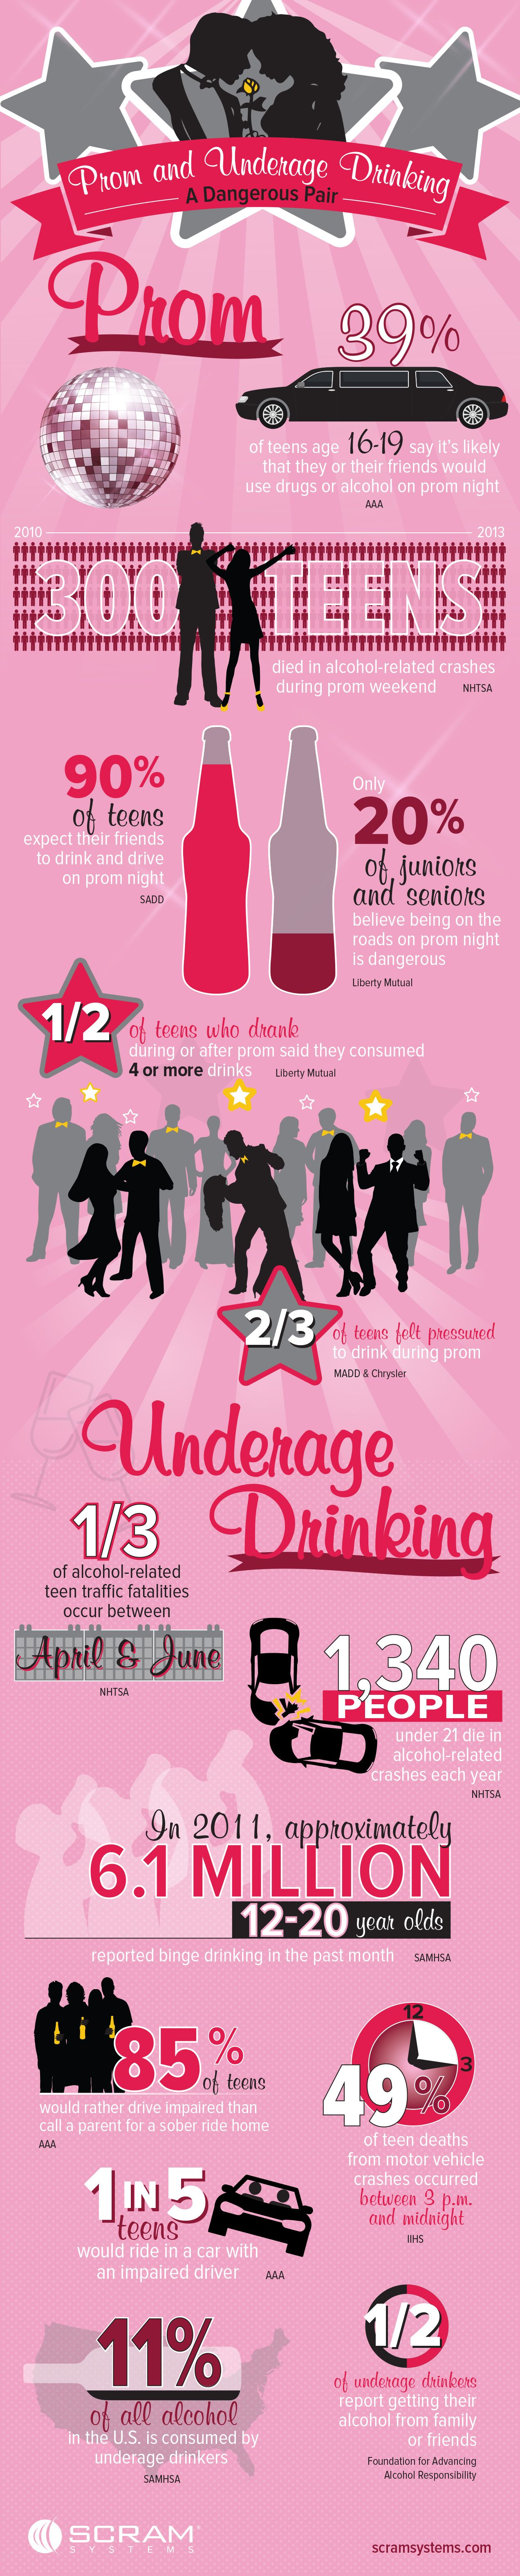 Infographic of prom, underage drinking, and the consequences.